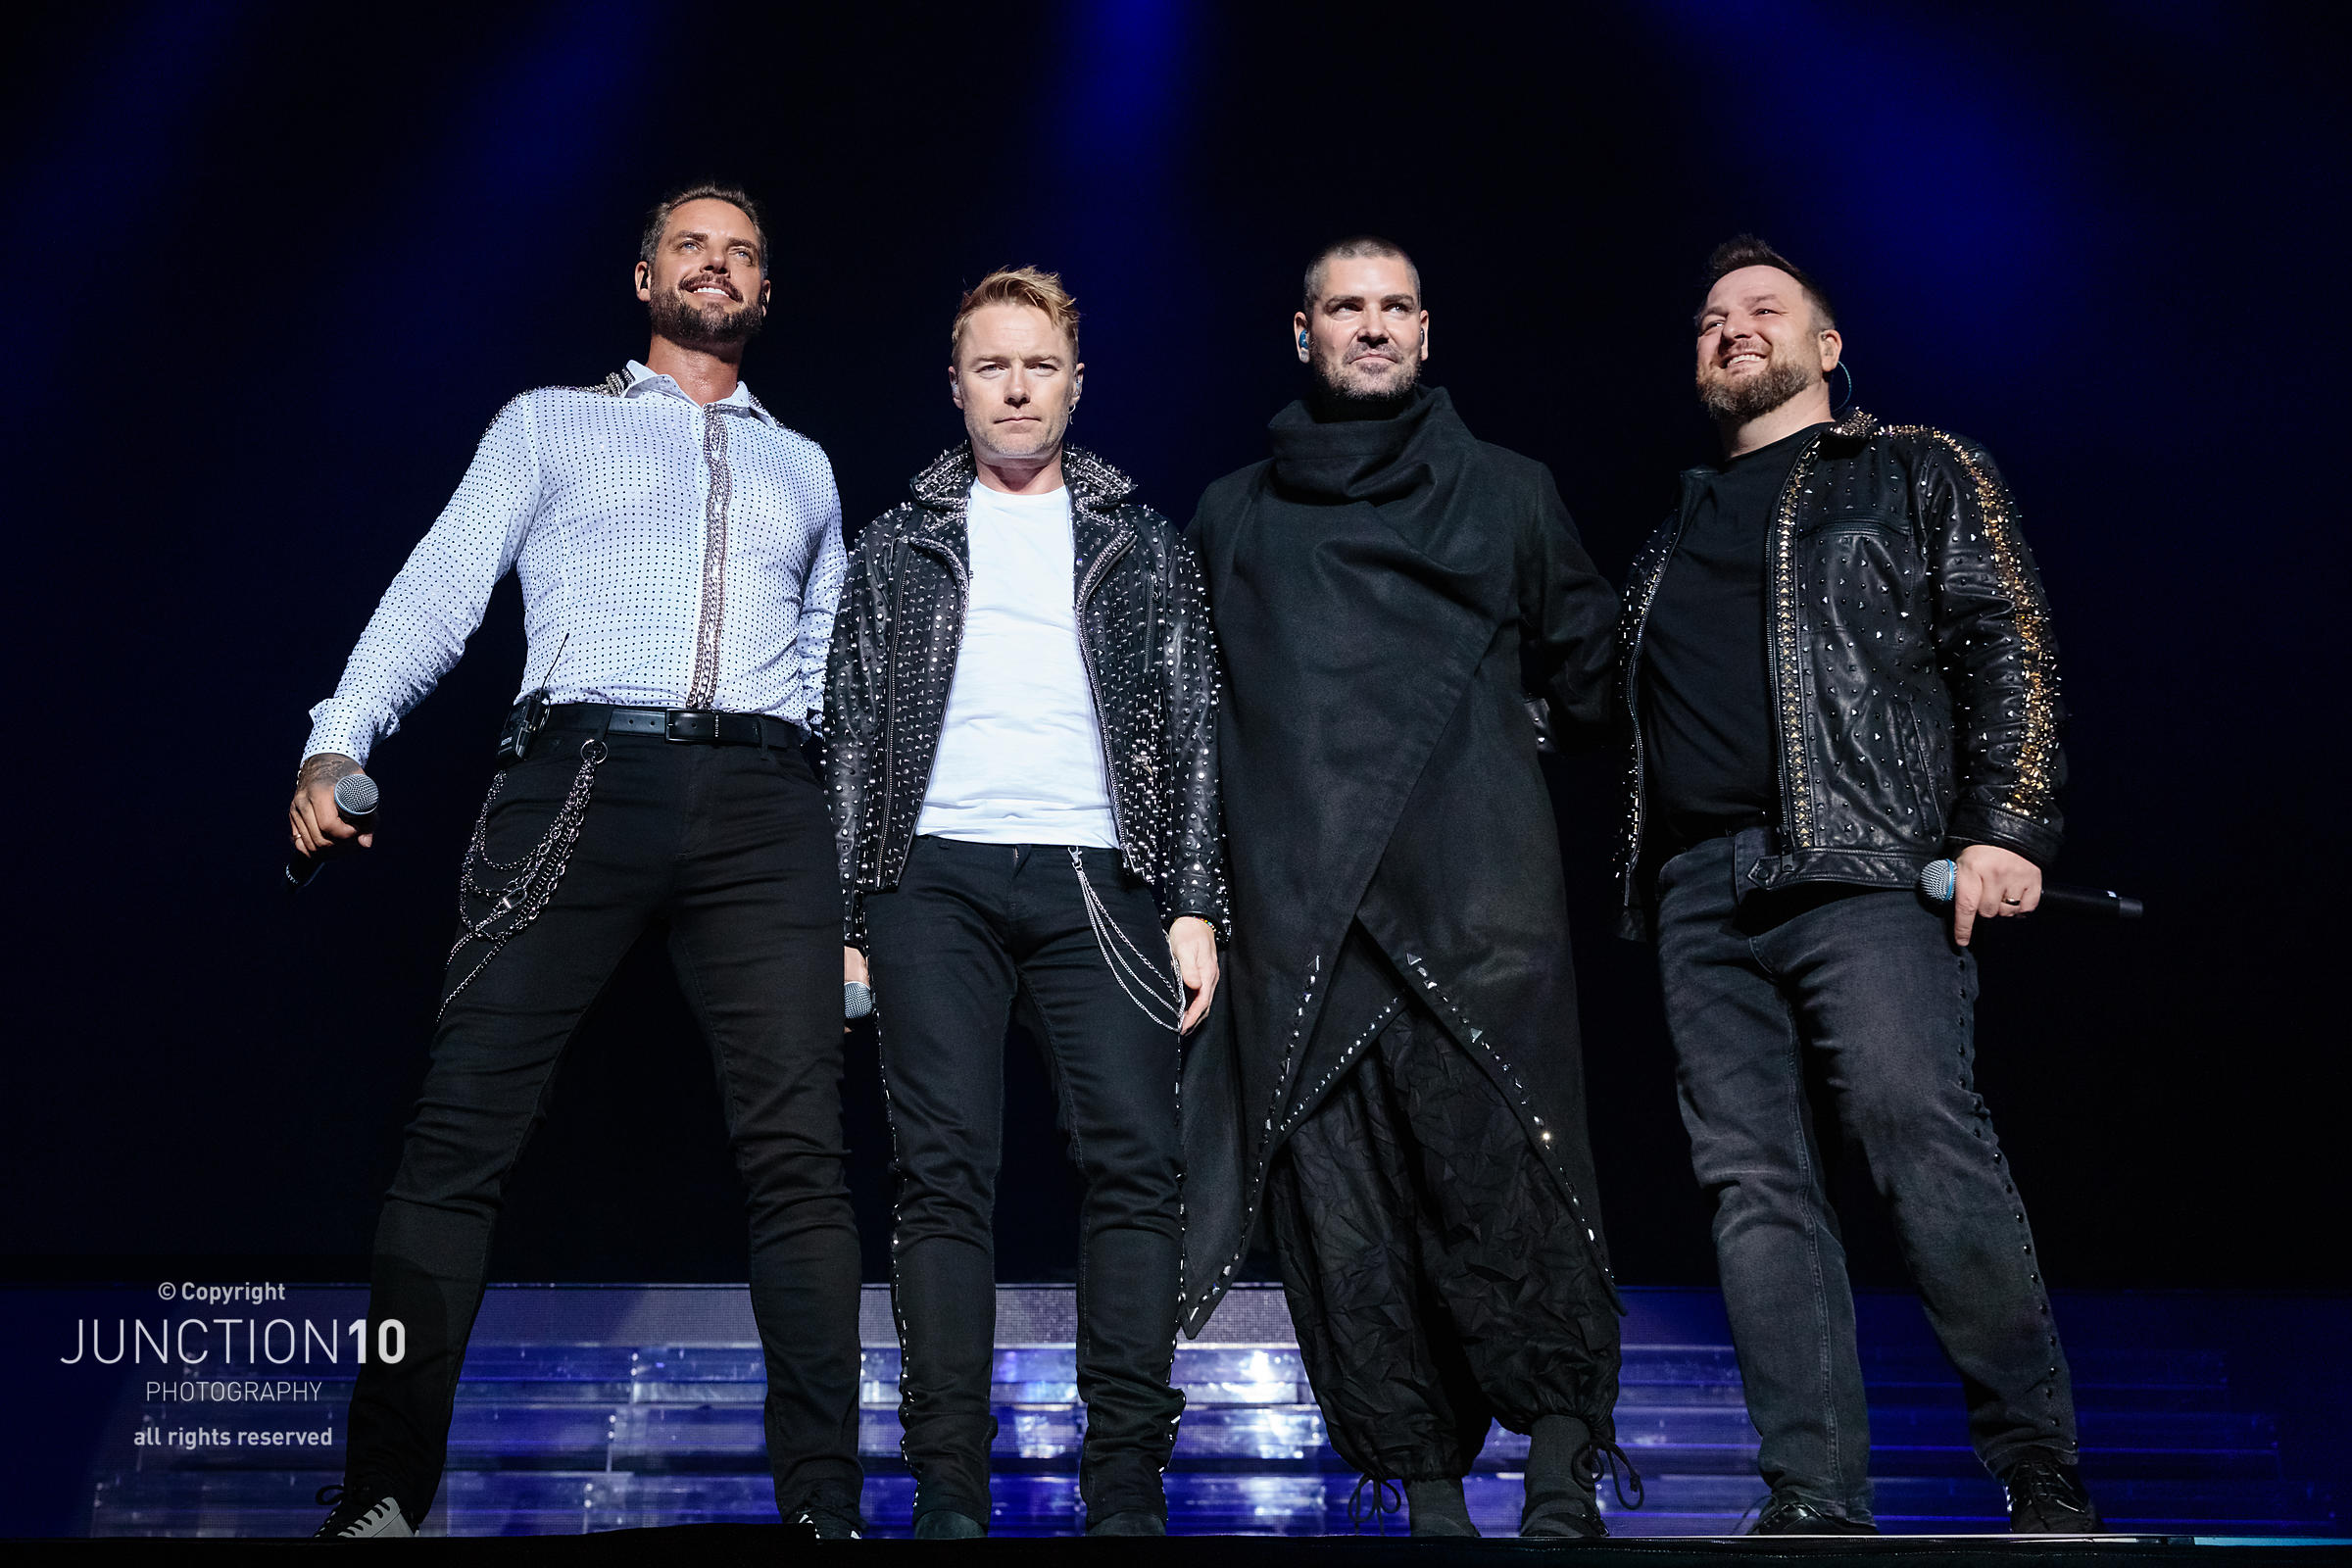 Boyzone in concert at Resorts World Arena, Birmingham, United Kingdom - 15 Oct 2019